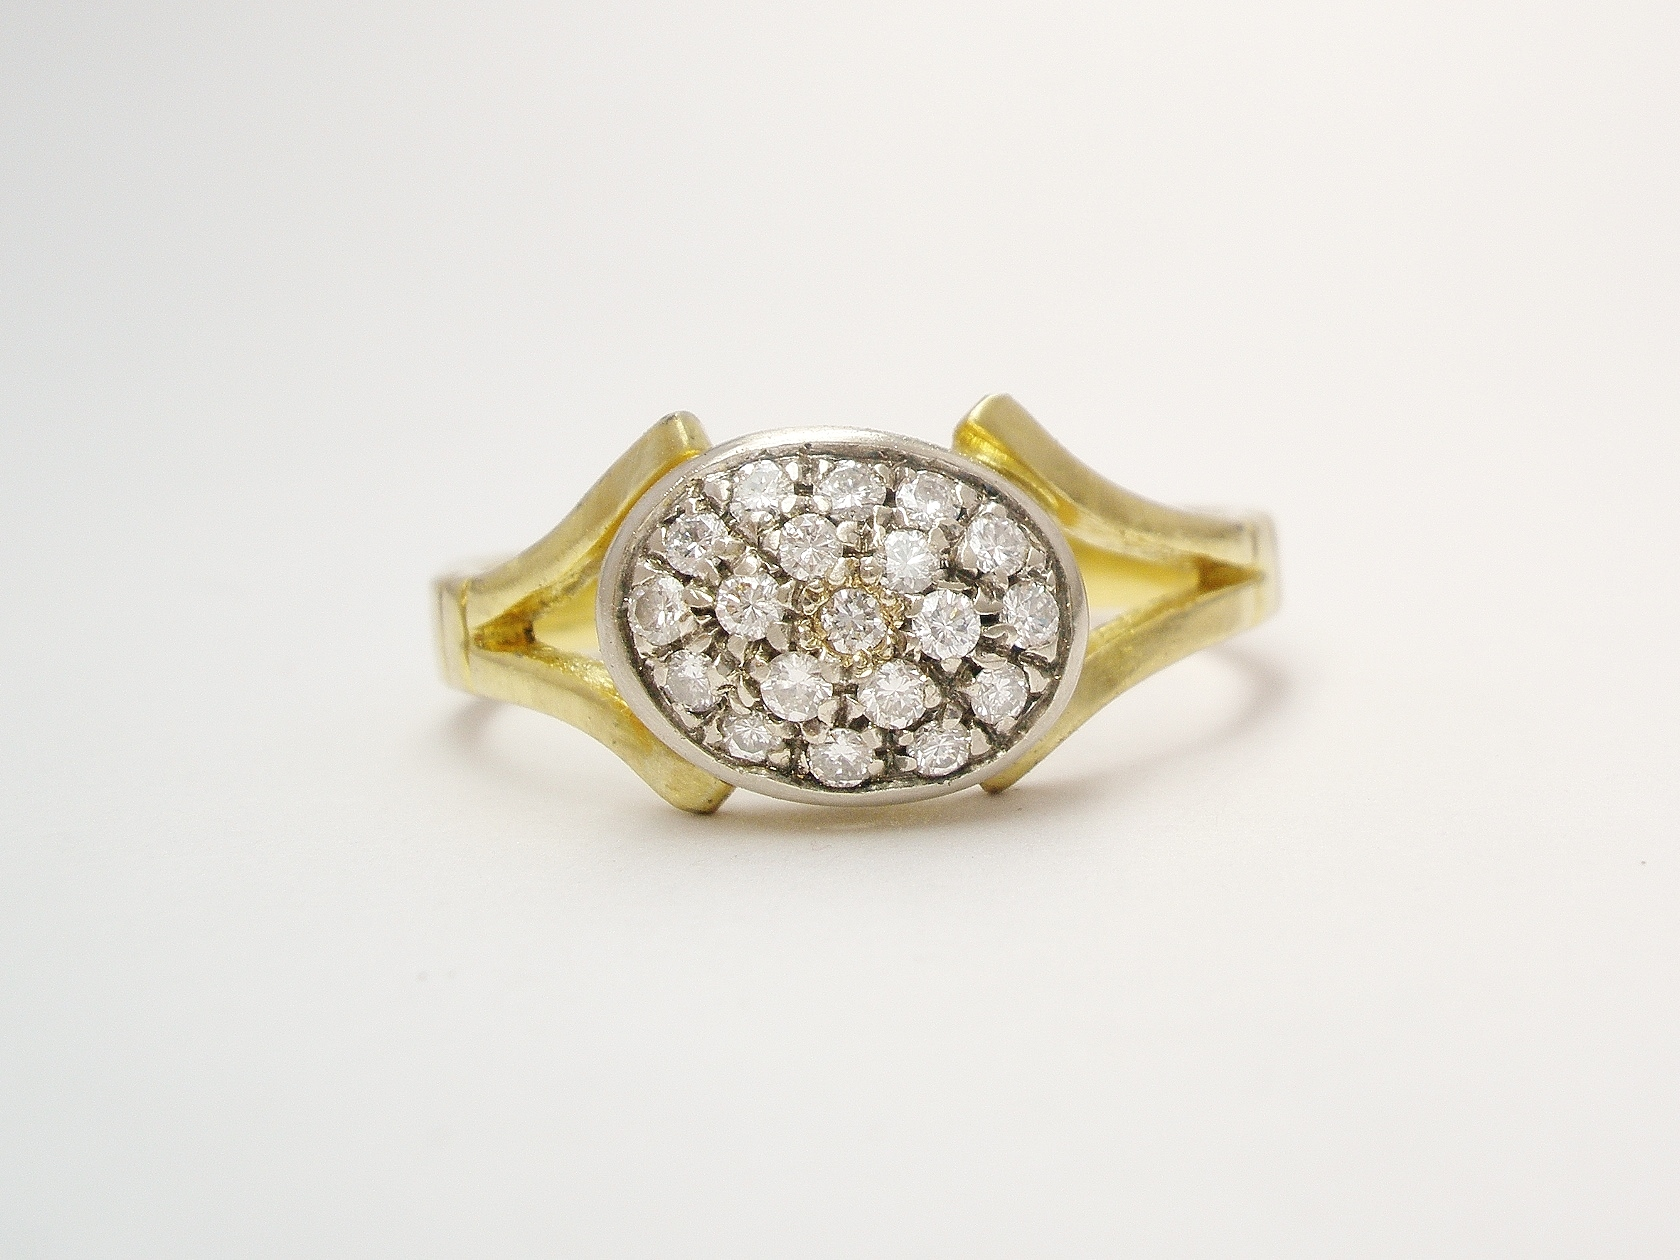 An 18ct. yellow gold & platinum topped pave` set diamond oval cluster.